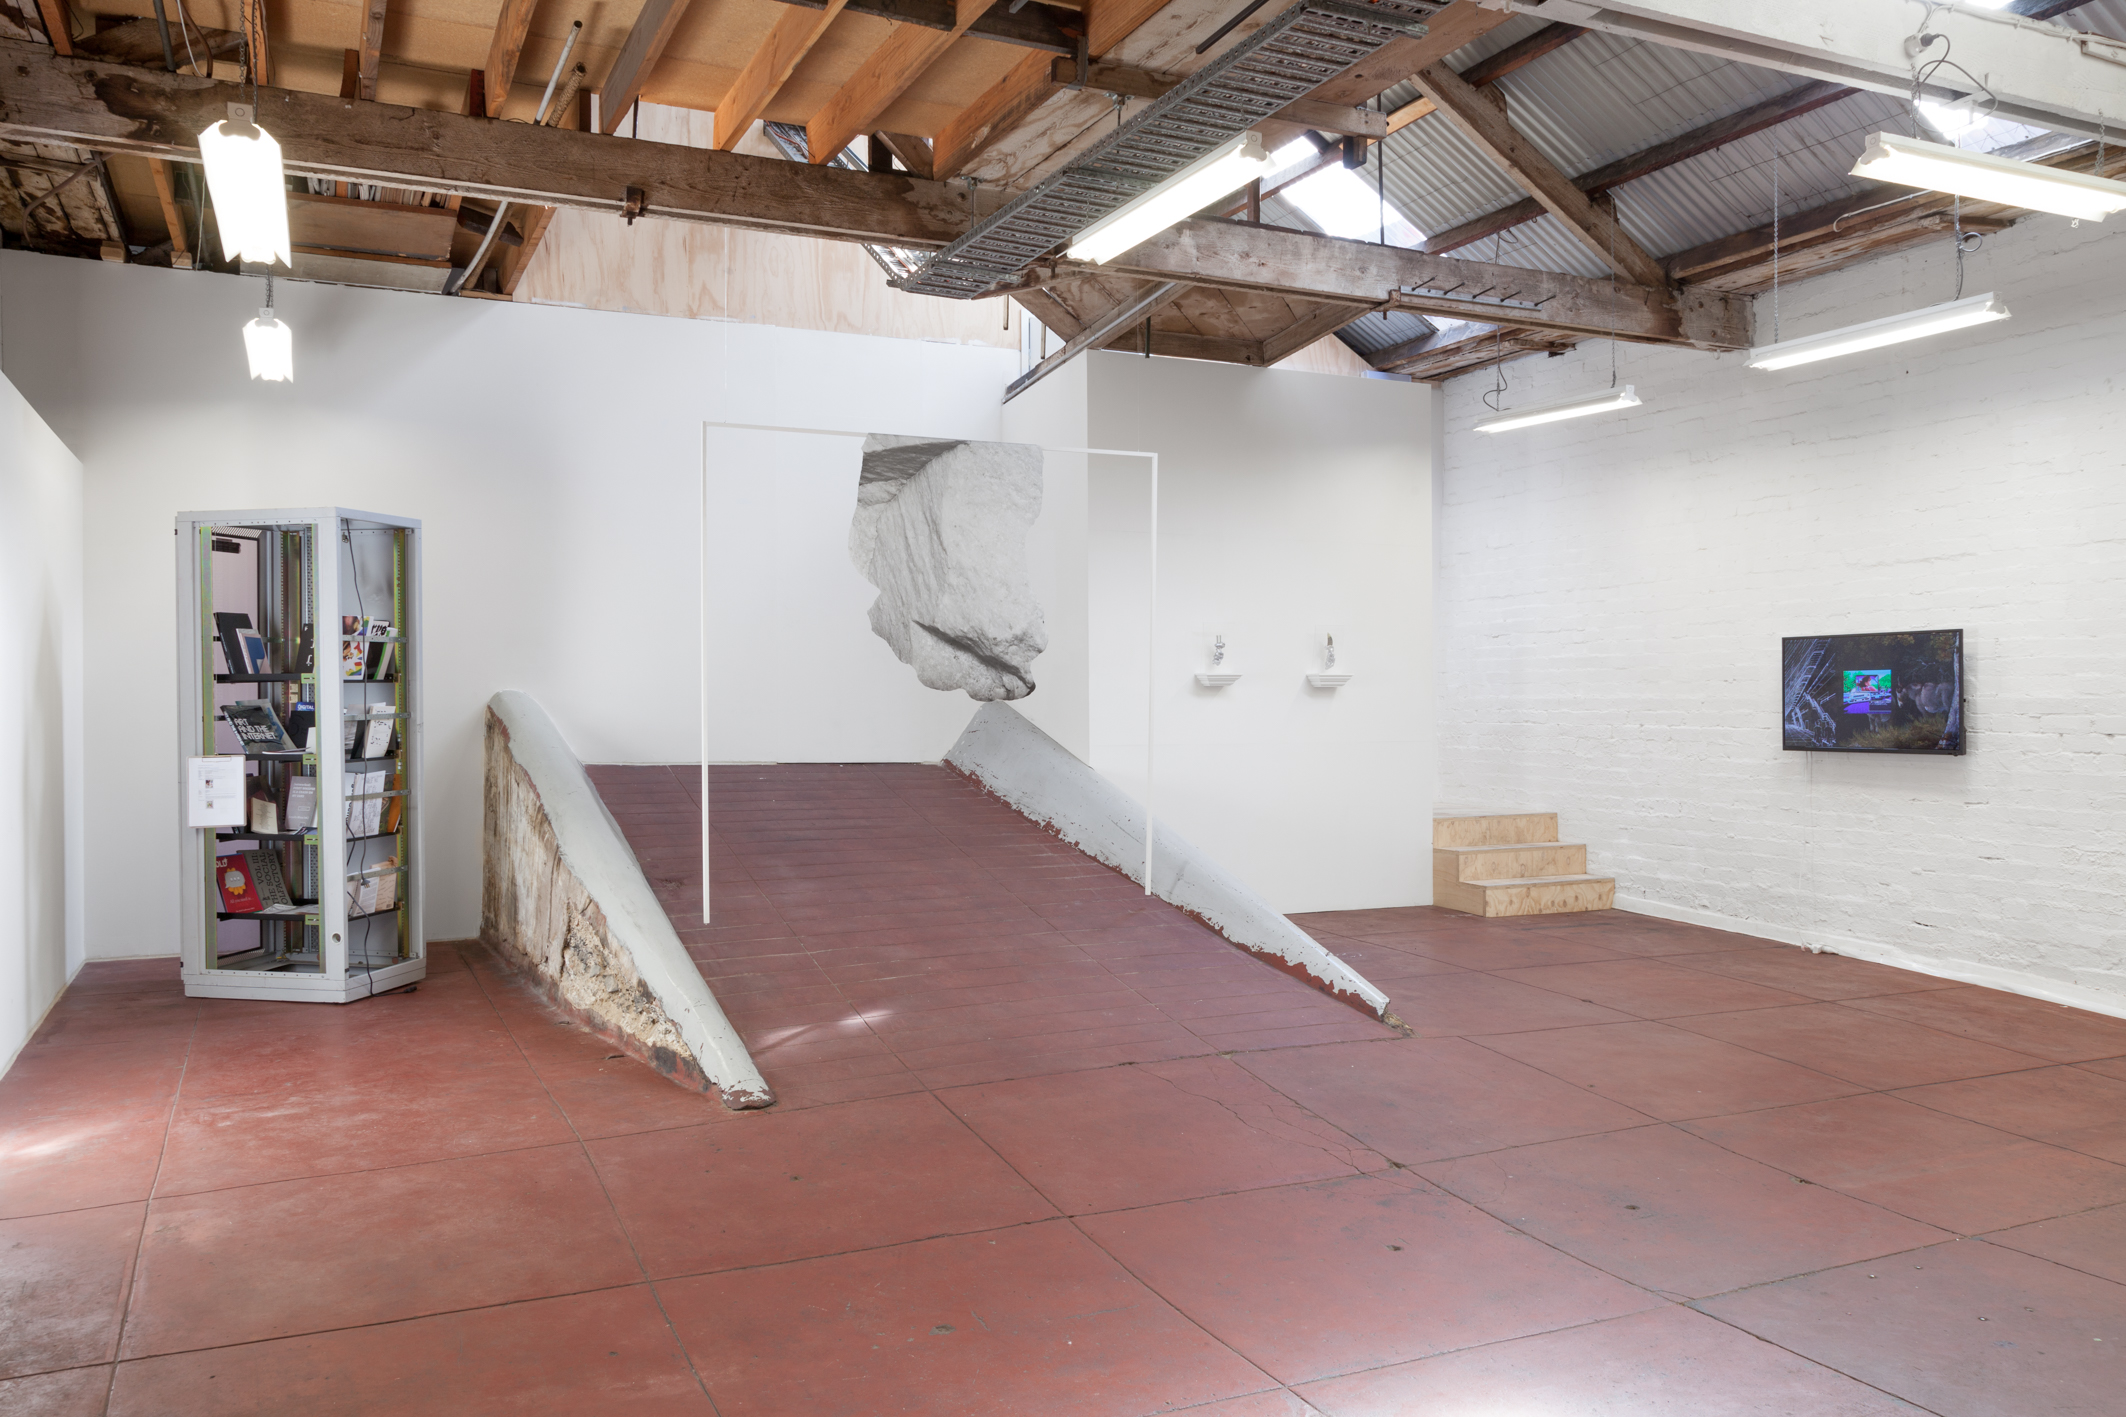 Tabularium installation view, Slopes, 2014.  Left: Alana Kushnir, Tabularium Archive, 2014 – ongoing, publications with an online ethos unavailable in digital form, server rack. Centre: Rachel de Joode, Hanging Marble, 2014, digital print on vinyl, MDF. Right: Katja Novitskova, Shapeshifter X, 2013 (left) and Shapeshifter V, 2013 (right), broken silicon wafers, epoxy clay, nail polish, appropriated acrylic case, appropriated wooden capital. Far right: Jon Rafman, Annals of Time Lost, 2013 (image still), single channel HD video, 6m 52s. Photograph: Christo Crocker.